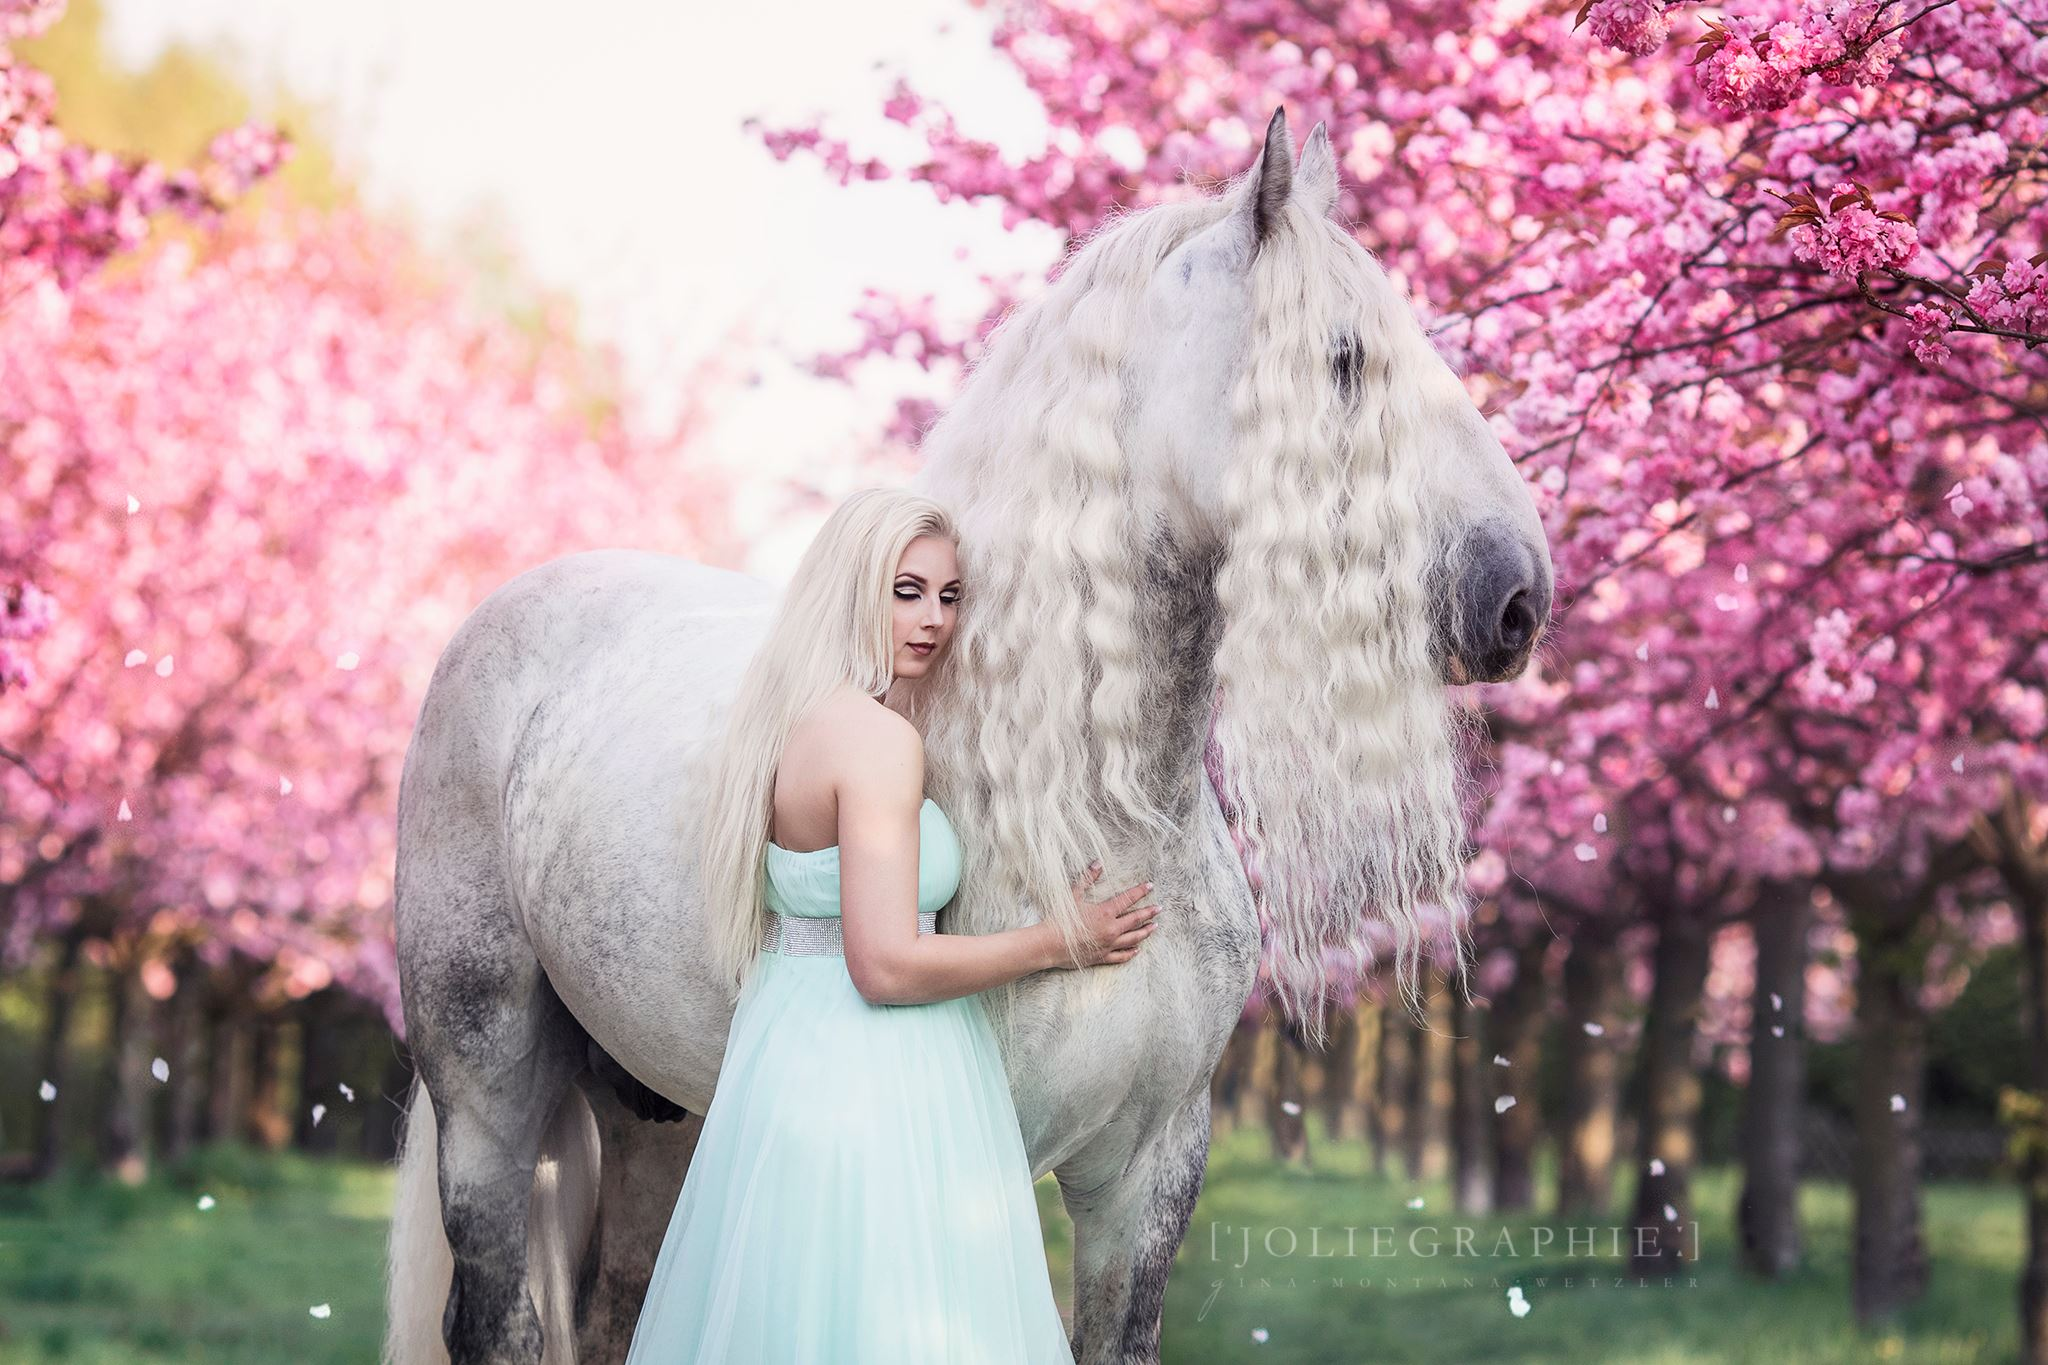 Berlin Shire Horse Upper Delves James mit Model Alina